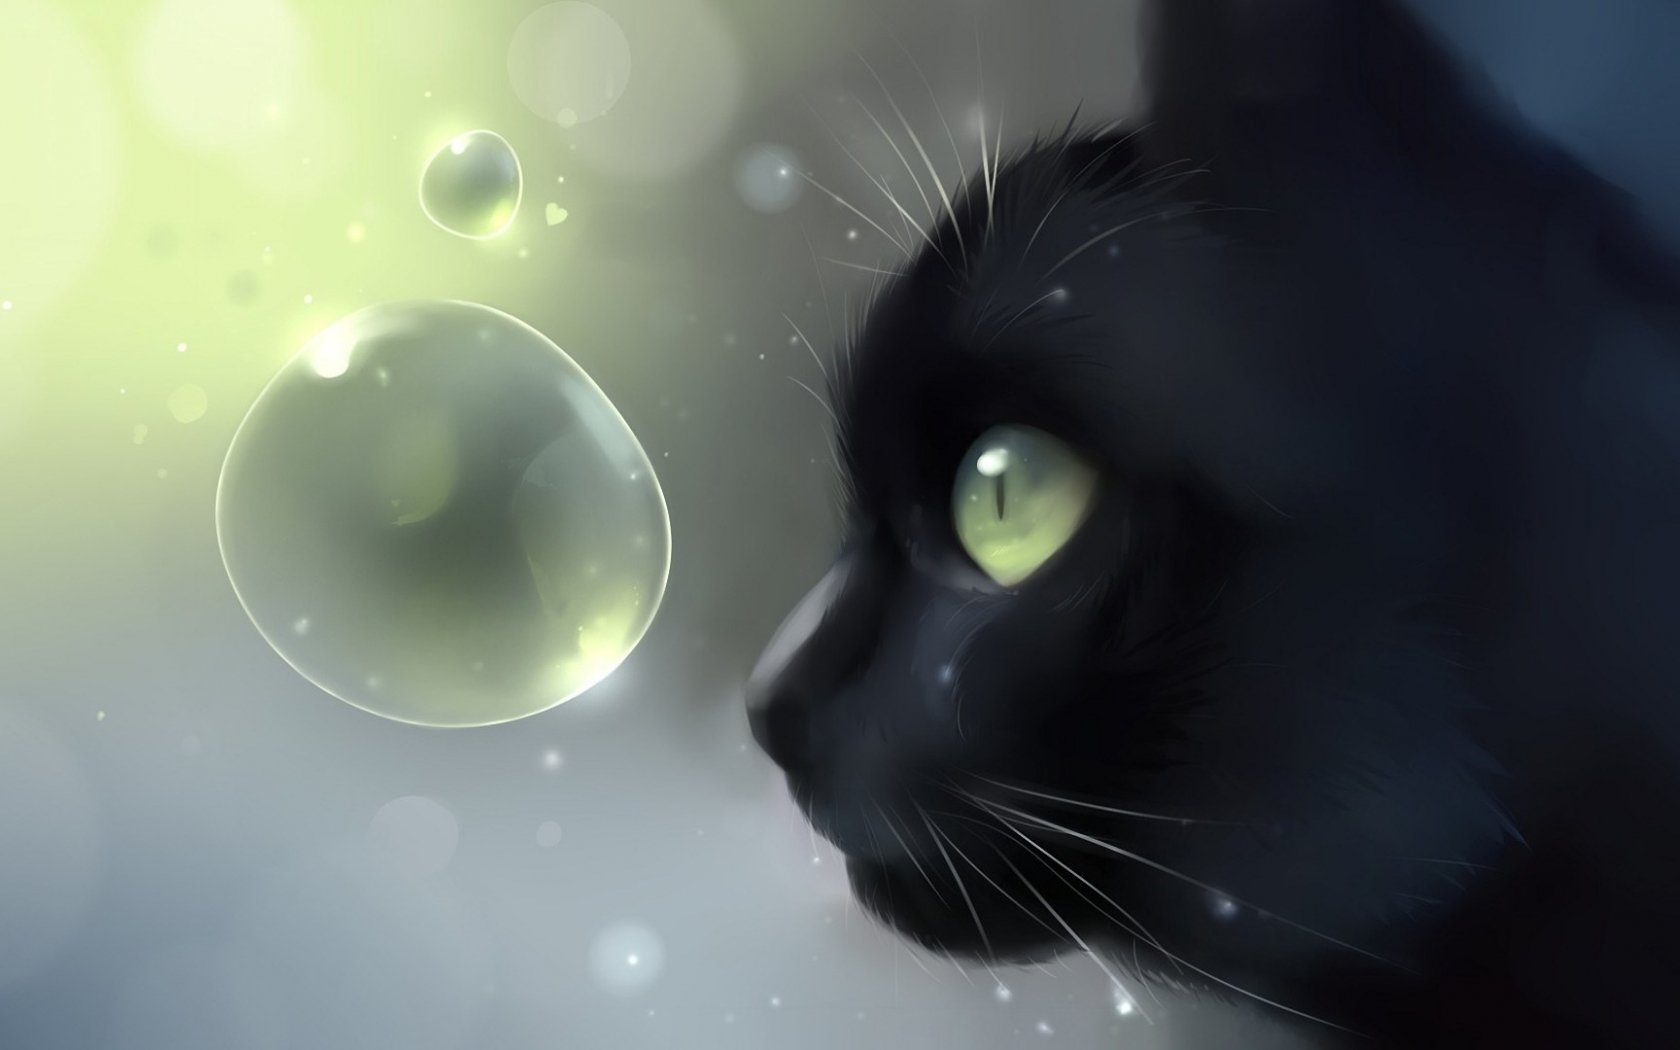 Free Download Showing Gallery For Cute Anime Black Cat Wallpaper 1920x1080 For Your Desktop Mobile Tablet Explore 48 Black Cat Wallpaper Drawings Cats Wallpaper Cat Wallpaper 1920x1080 Screensavers And Wallpaper Cats